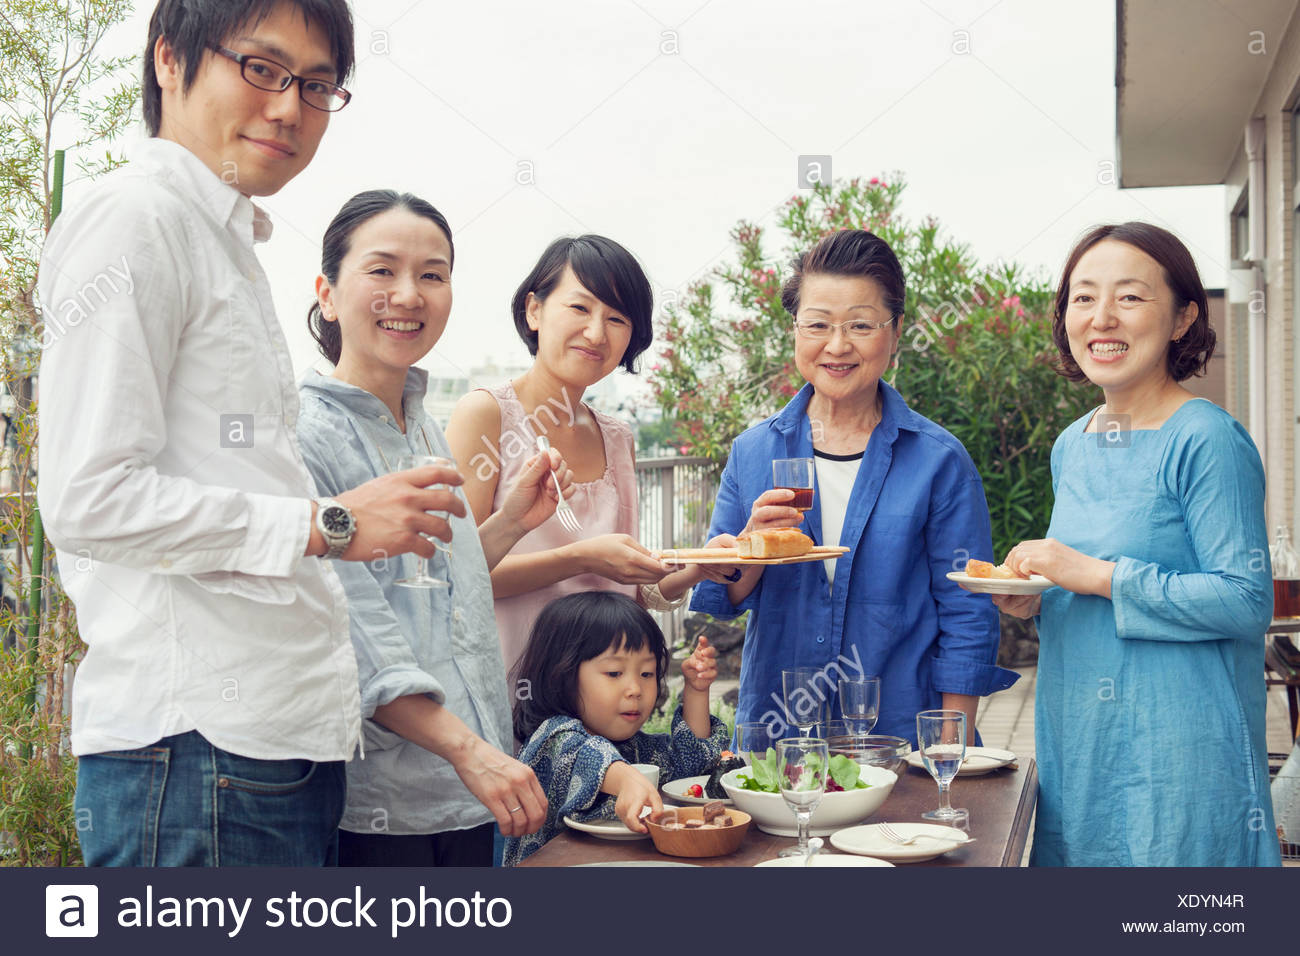 Three generation family eating outdoors, portrait - Stock Image